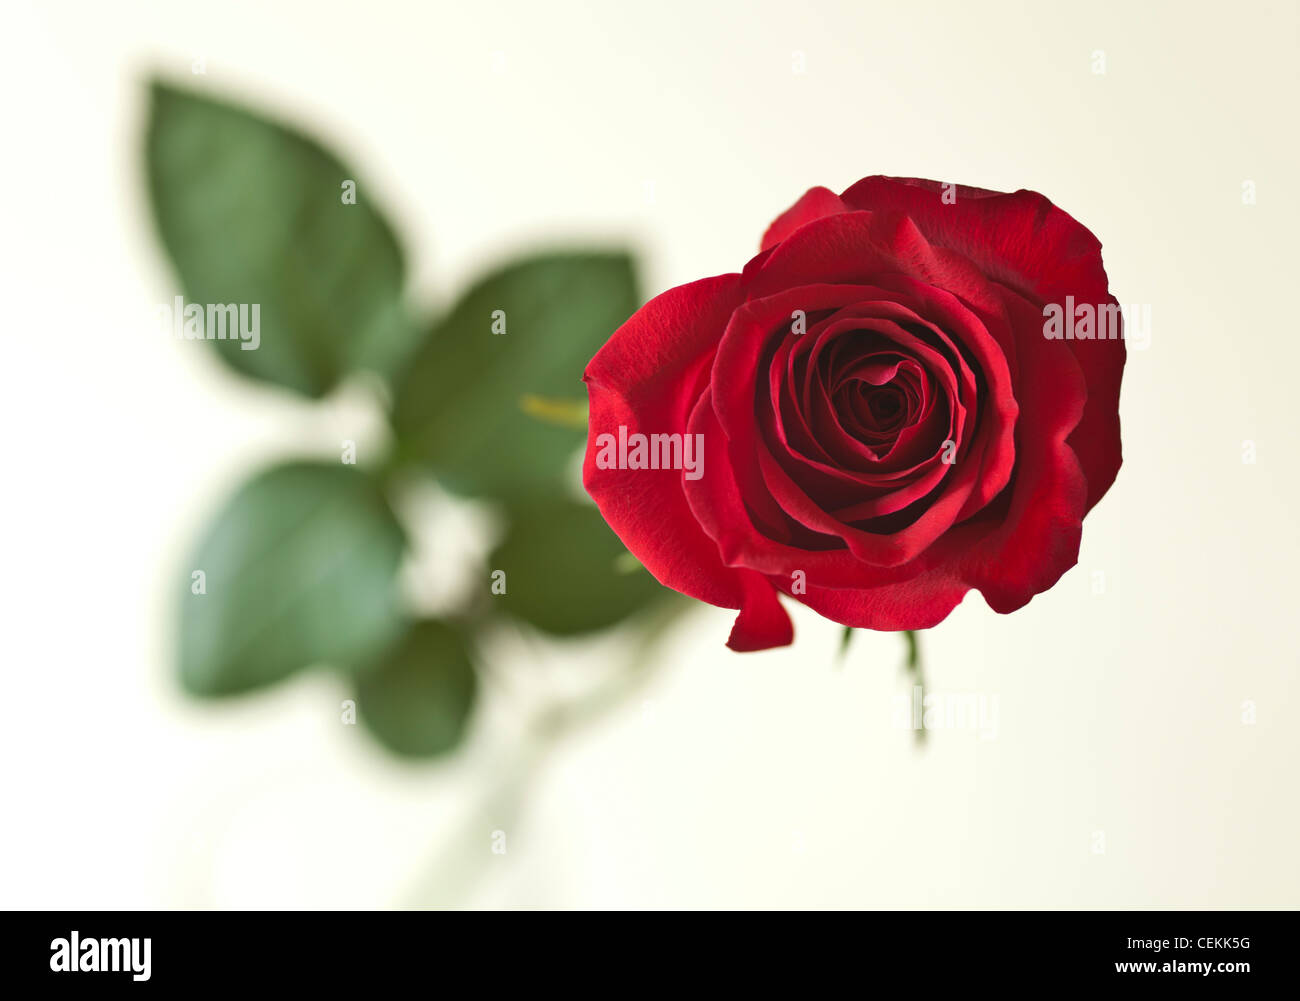 A single red rose a symbol of love stock photo royalty free a single red rose a symbol of love biocorpaavc Images